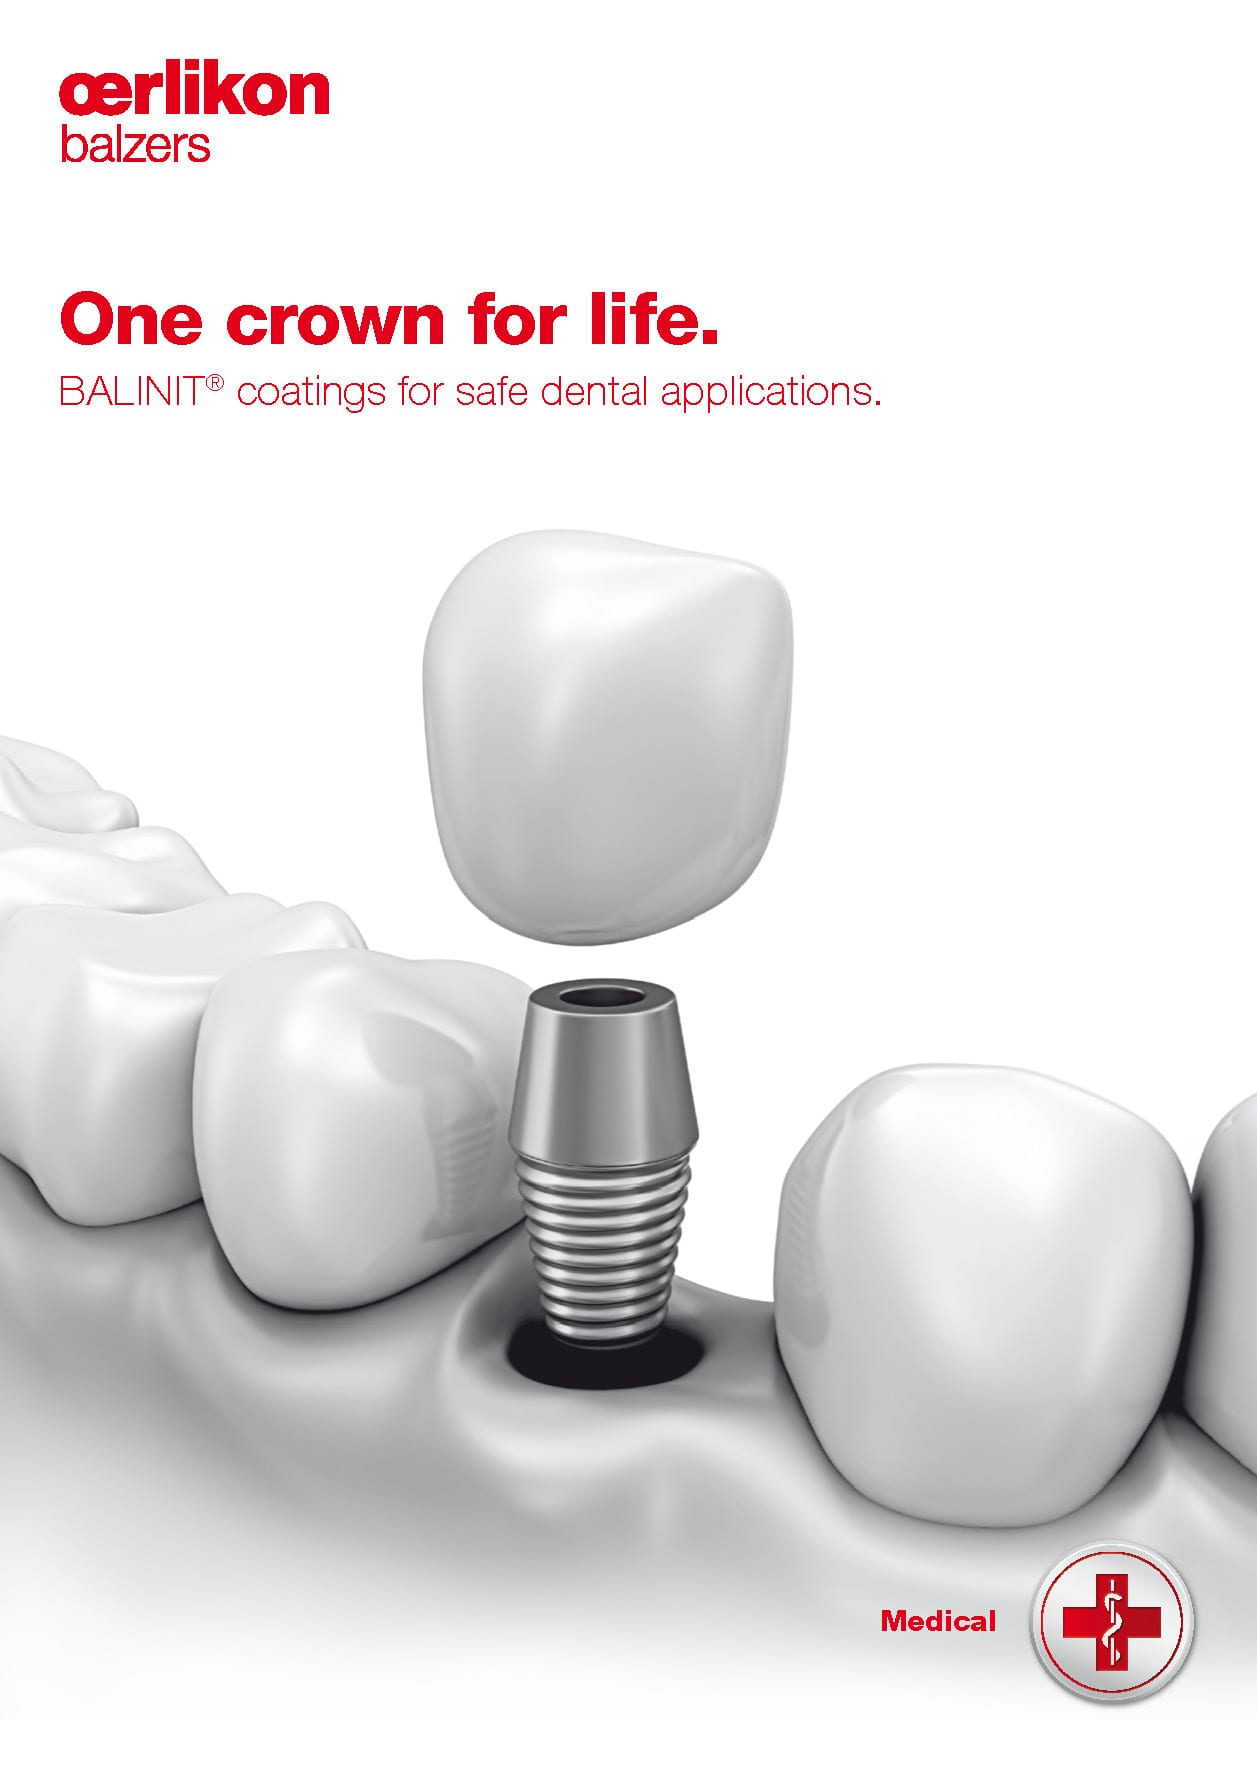 Medical Dental Screws - One crown for life